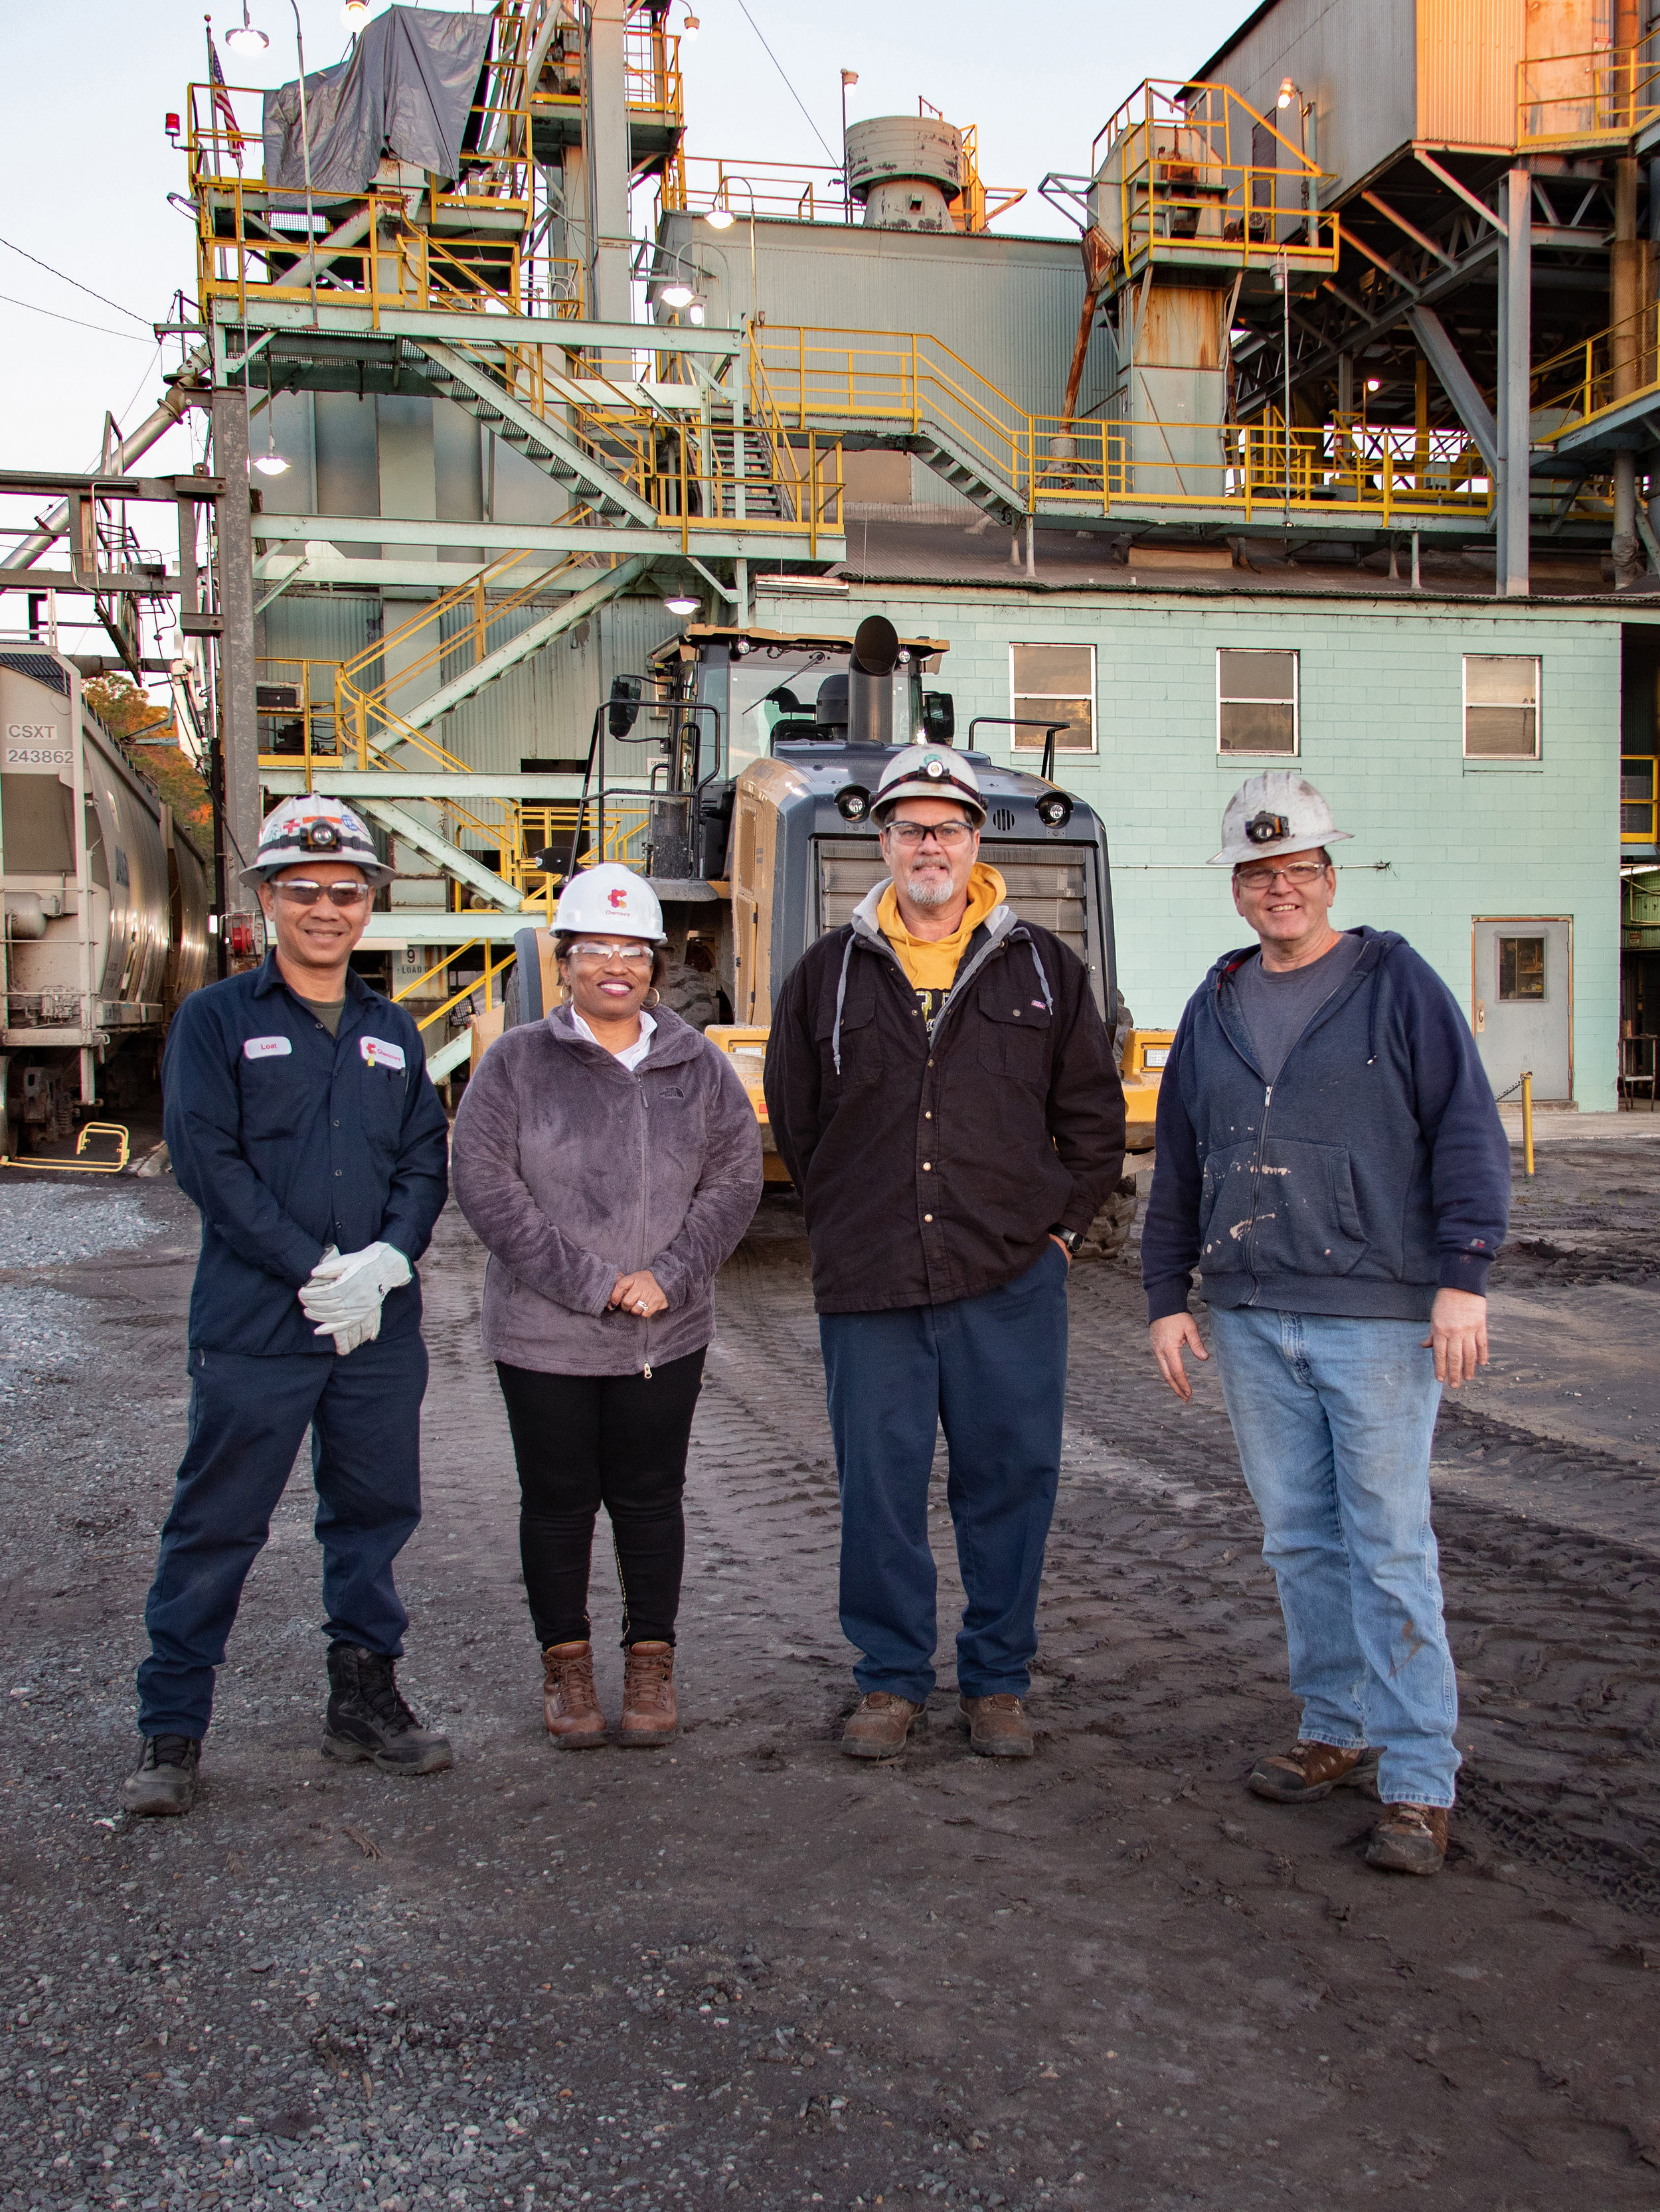 Environmental portraits - Sometimes your location is exactly what you need. We can also capture your team using your office, buildings, or environment as a background. We aren't afraid of a little dirt (or a lot of dirt). One a side note, seeing how Chemours runs their plants was fascinating! Much cleaner than I could have imagined. They don't even use chemicals. Did you know that Northeast Florida and part of Southern Georgia is where the minerals are found to make the world's jet turbines?